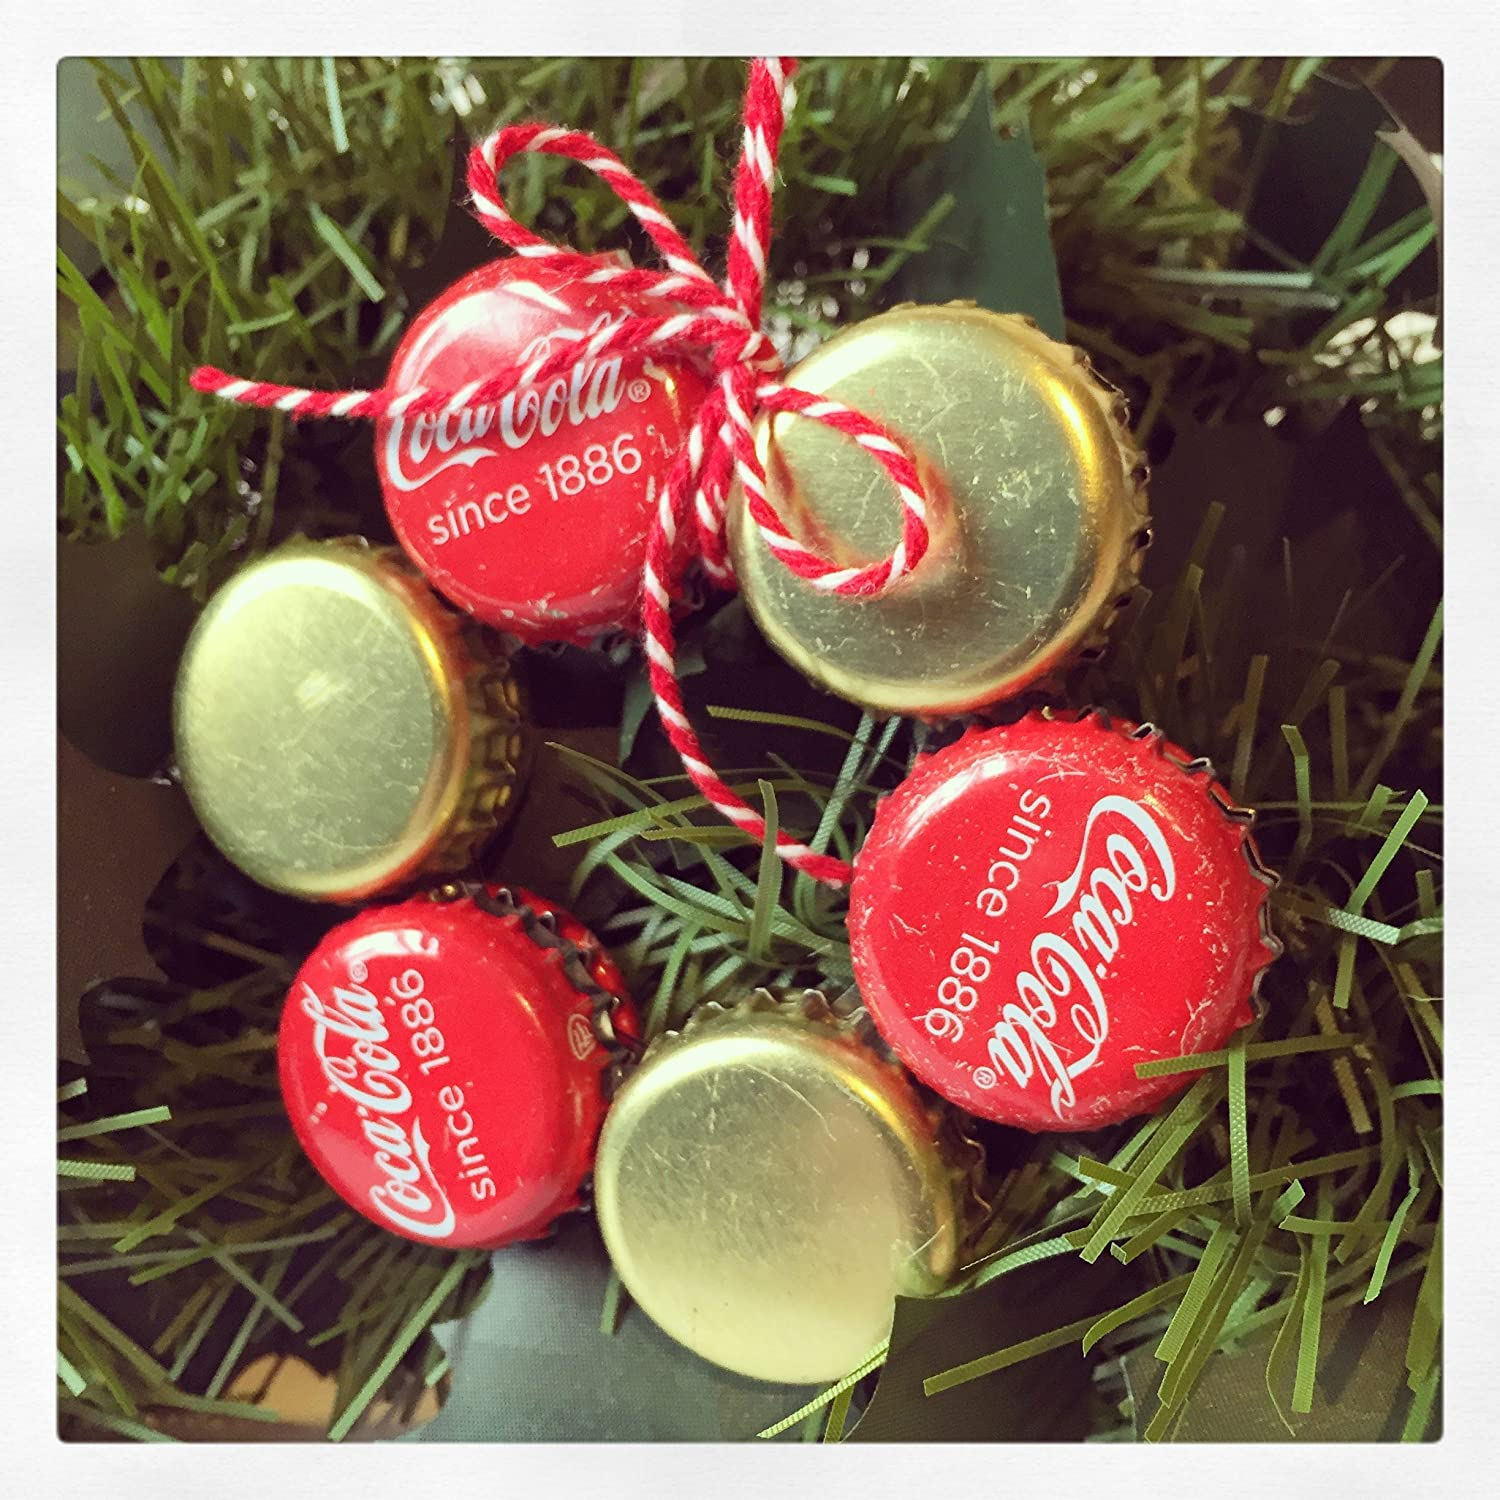 Bottle Cap Christmas Tree Decoration Coca Cola since 1886 and